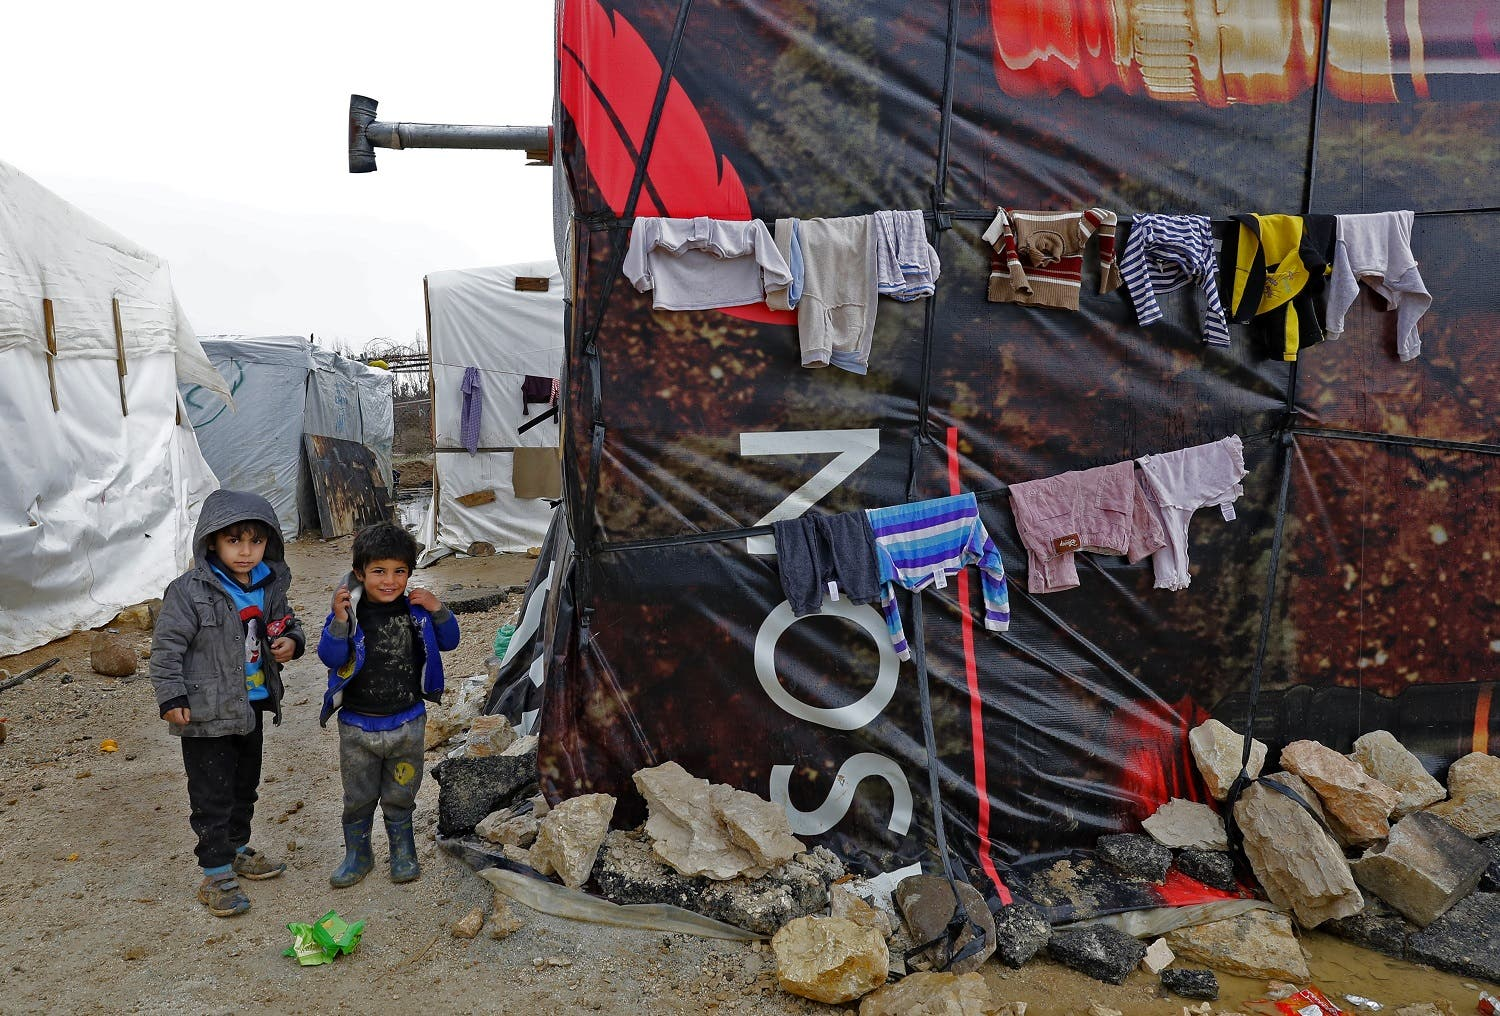 Syrian refugee children walk at an unofficial refugee camp in the village of Deir Zannoun in Lebanon's Bekaa valley on January 31, 2017.